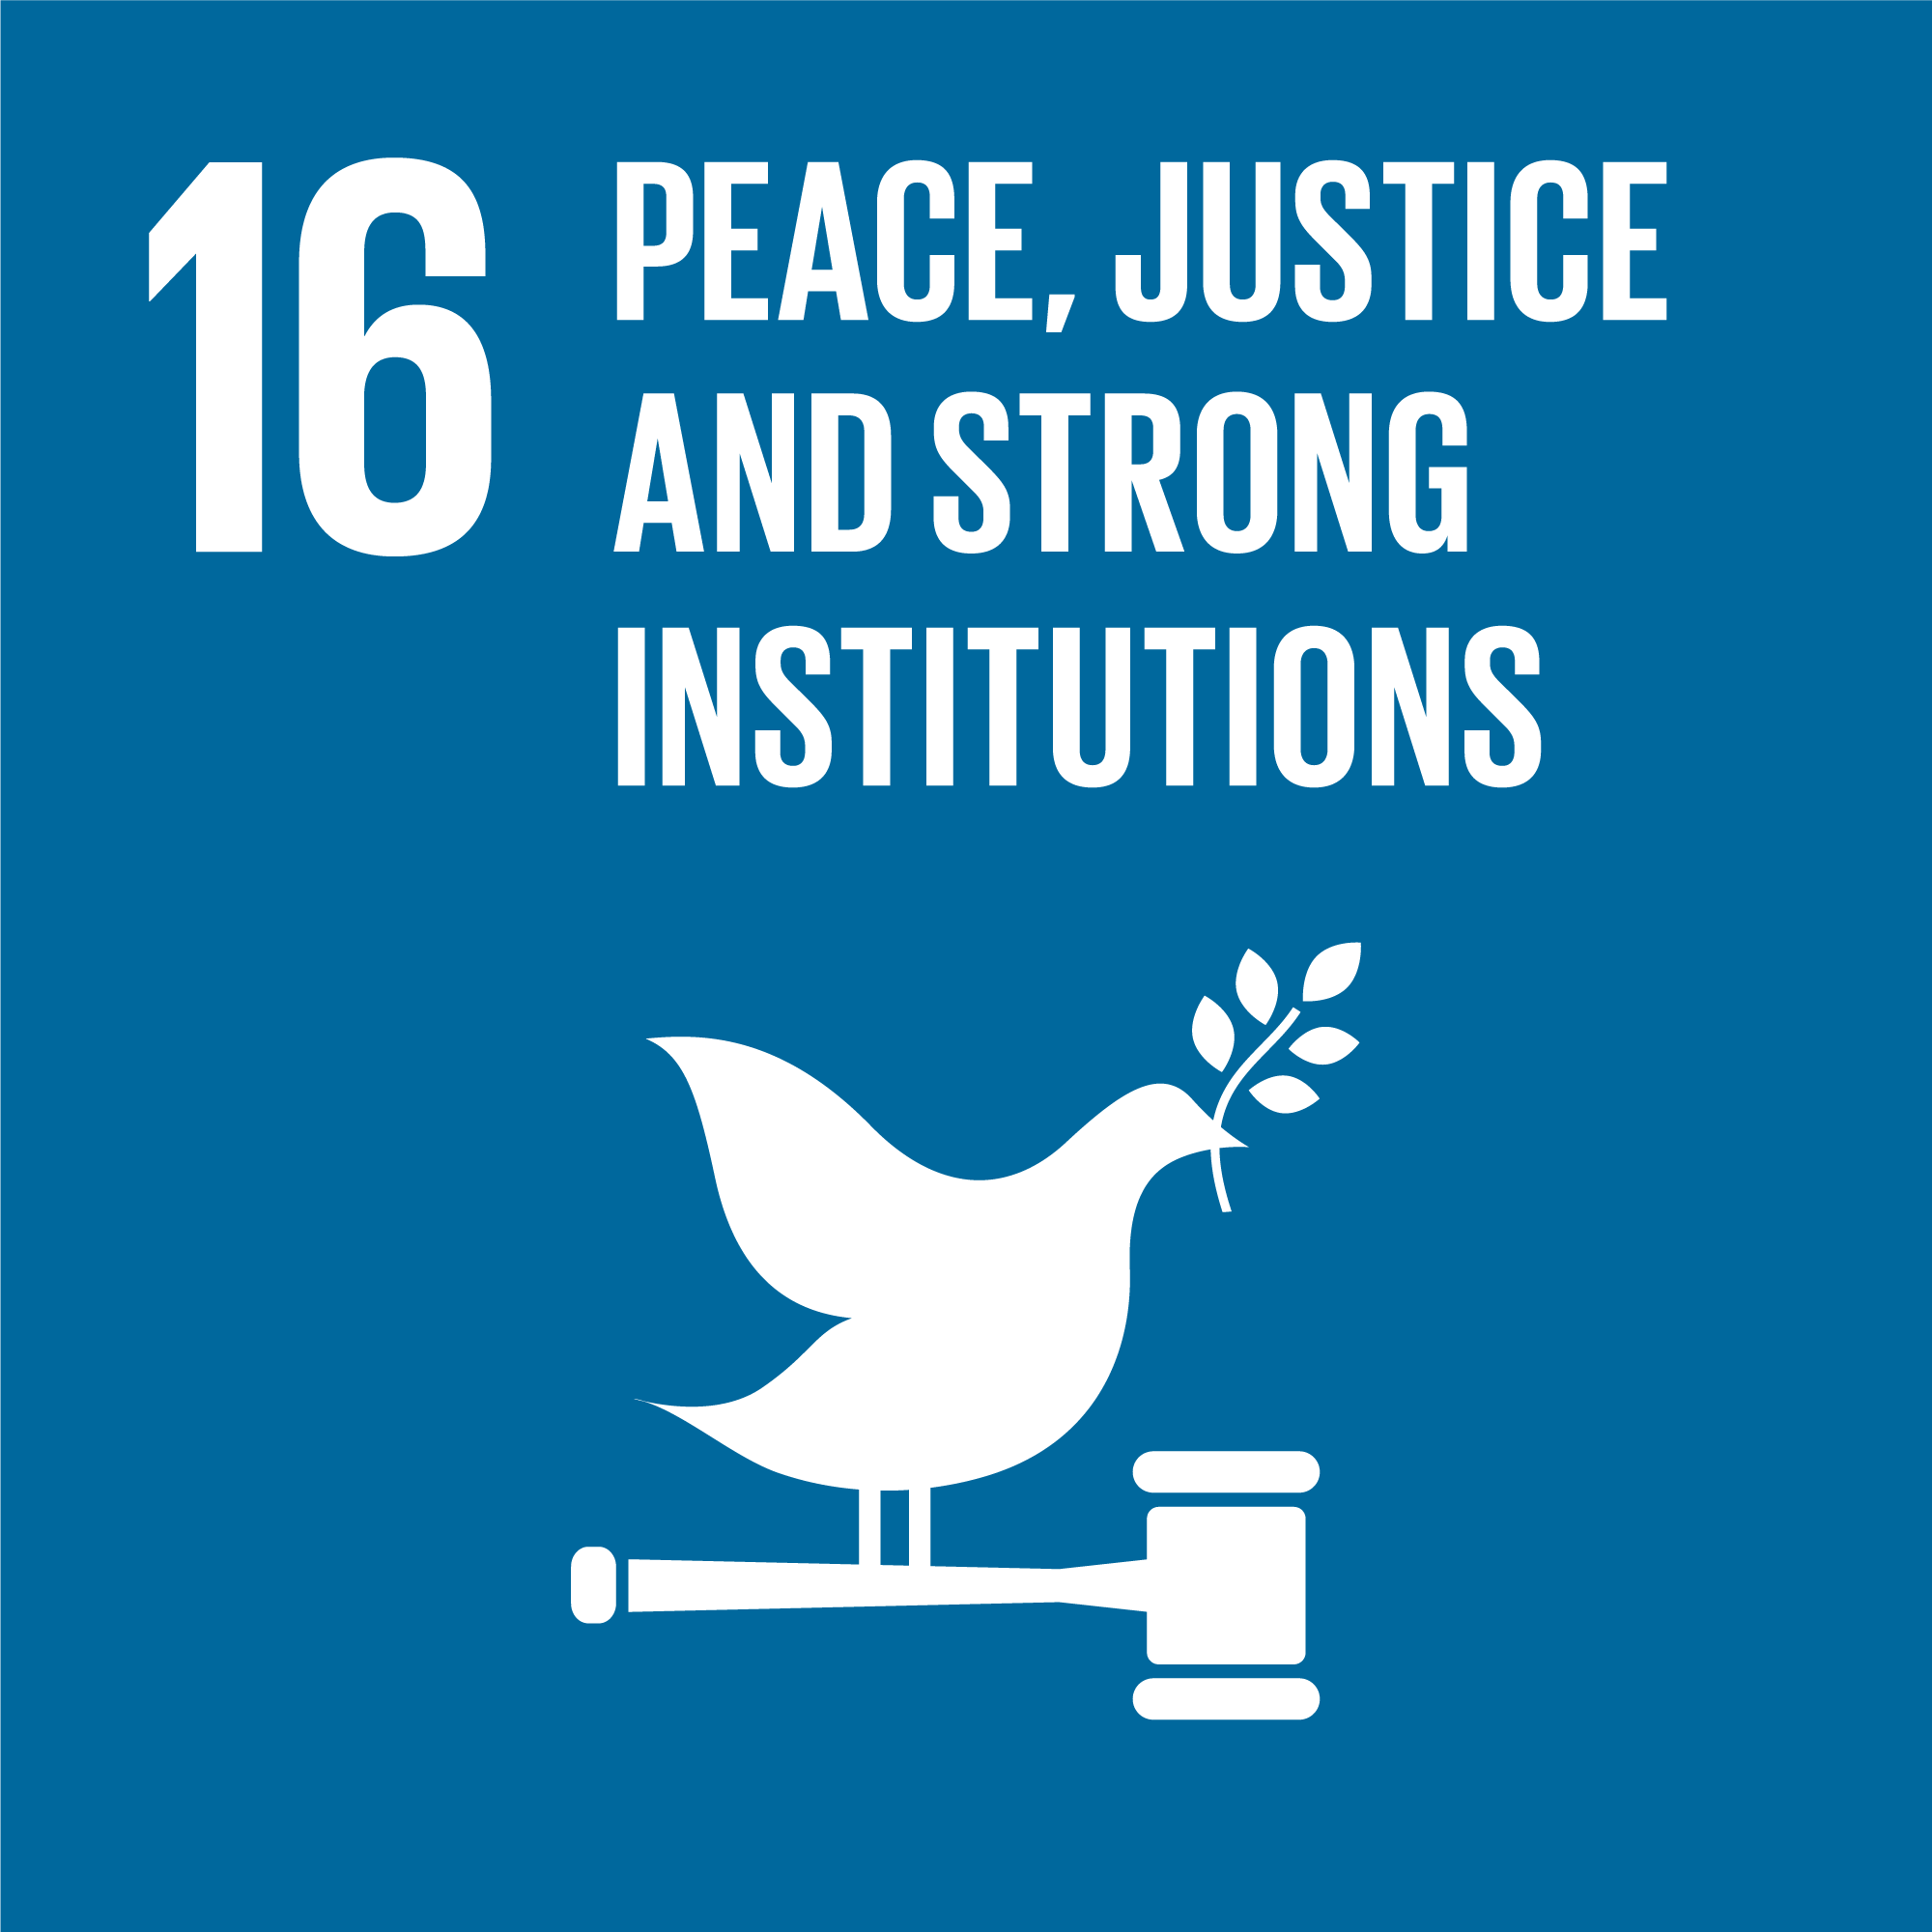 Goal 16. Promote peaceful and inclusive societies for sustainable development, provide access to justice for all and build effective, accountable and inclusive institutions at all levels    12 Targets    23 Indicators